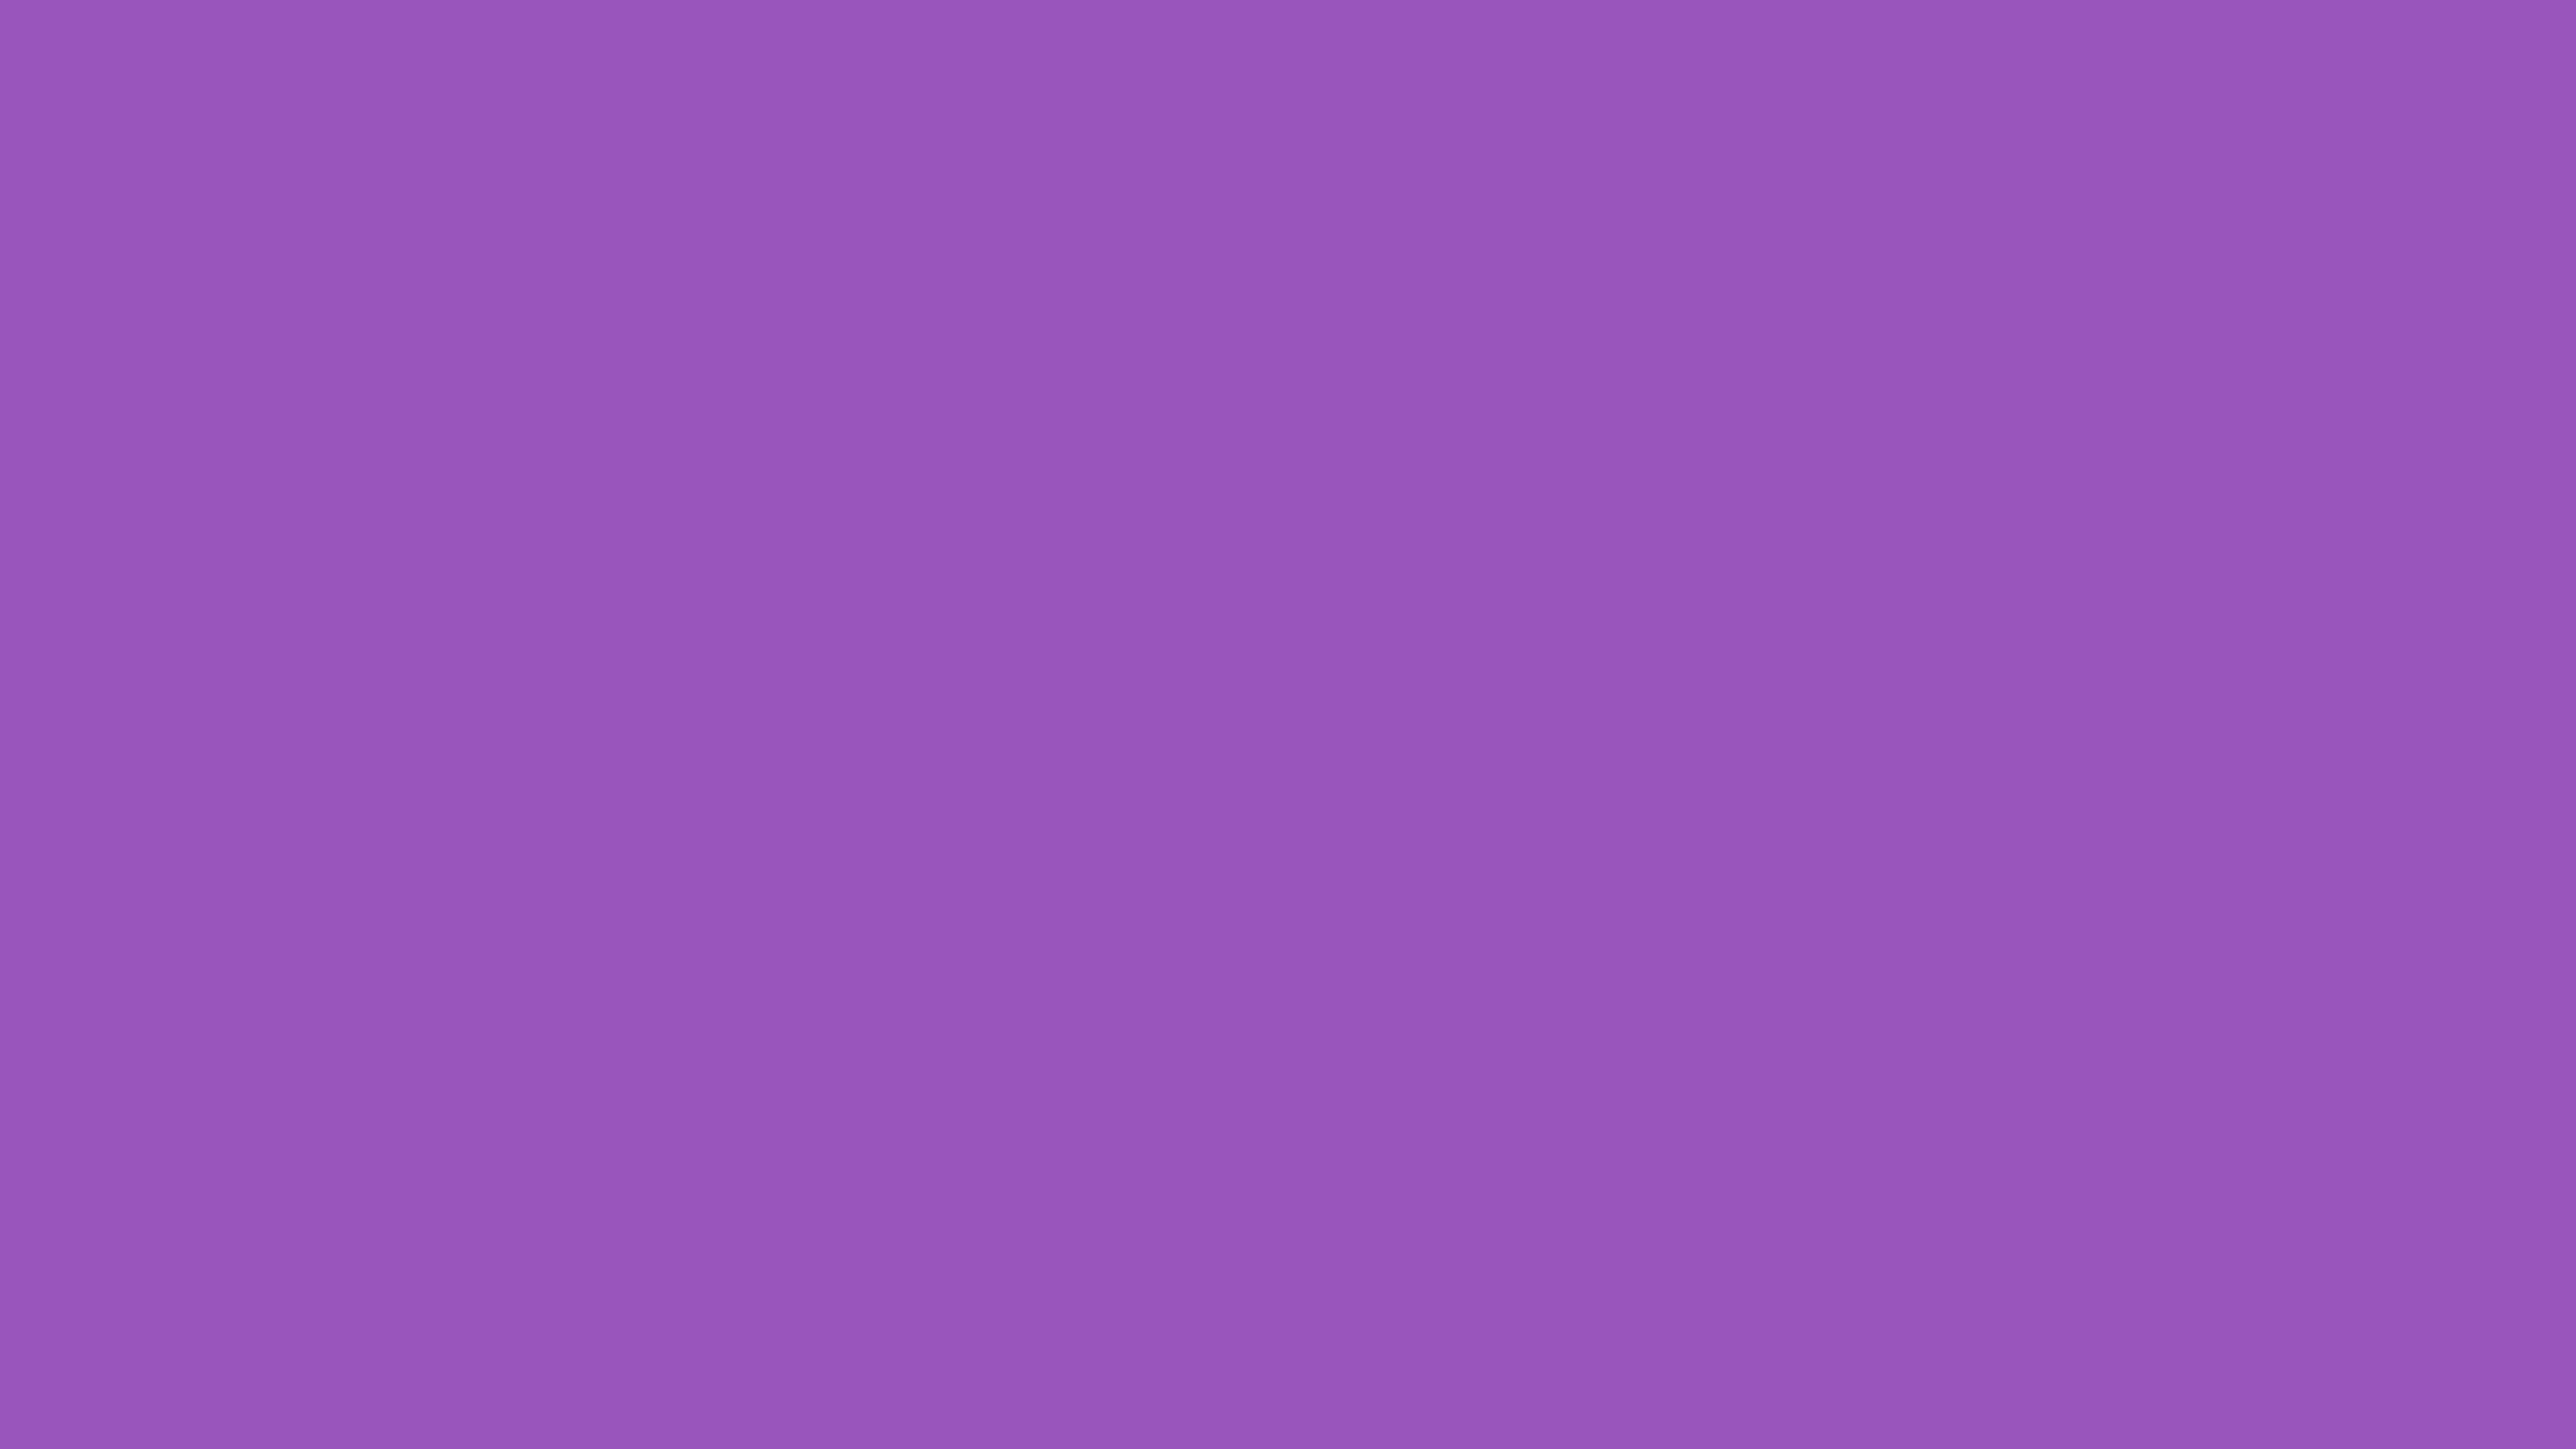 4096x2304 Deep Lilac Solid Color Background